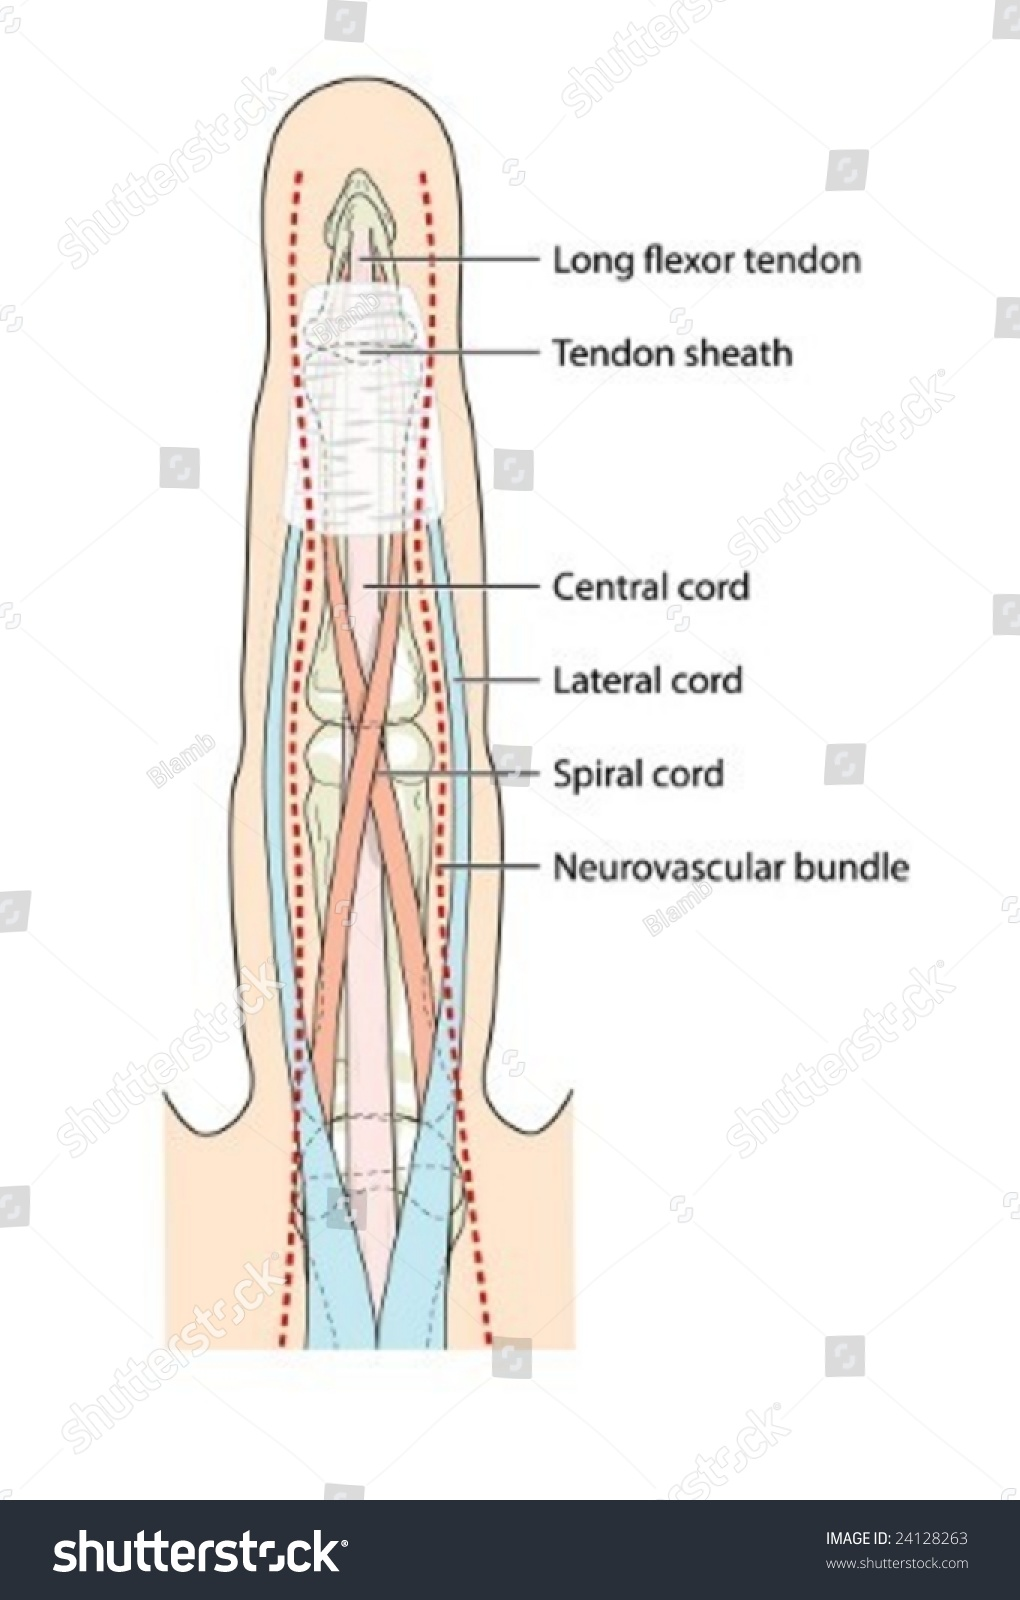 Anatomy Finger Tendons Labeled Stock Vector Royalty Free 24128263